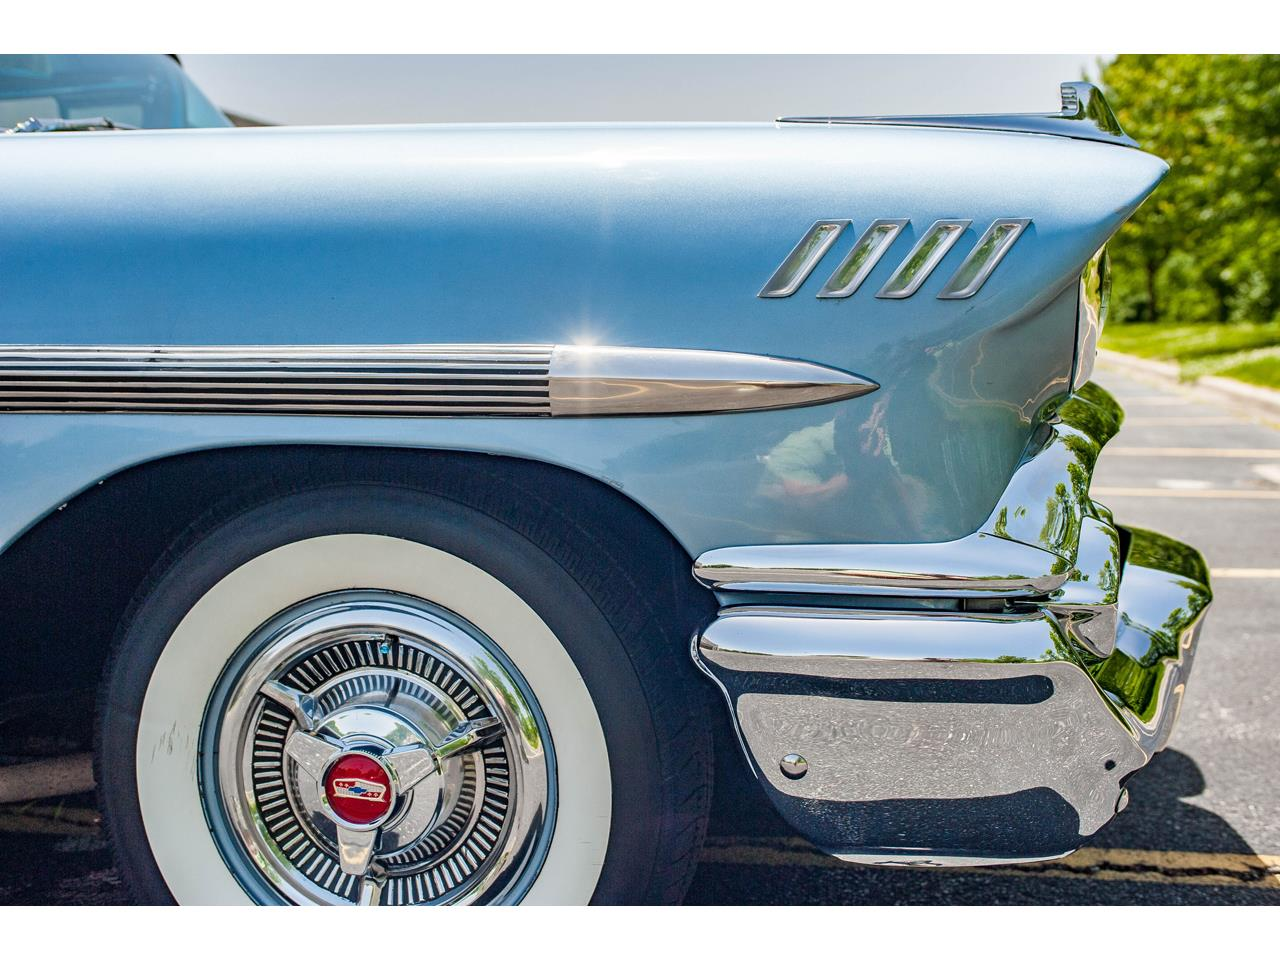 Large Picture of 1958 Chevrolet Impala - $62,000.00 Offered by Gateway Classic Cars - St. Louis - QB9Q